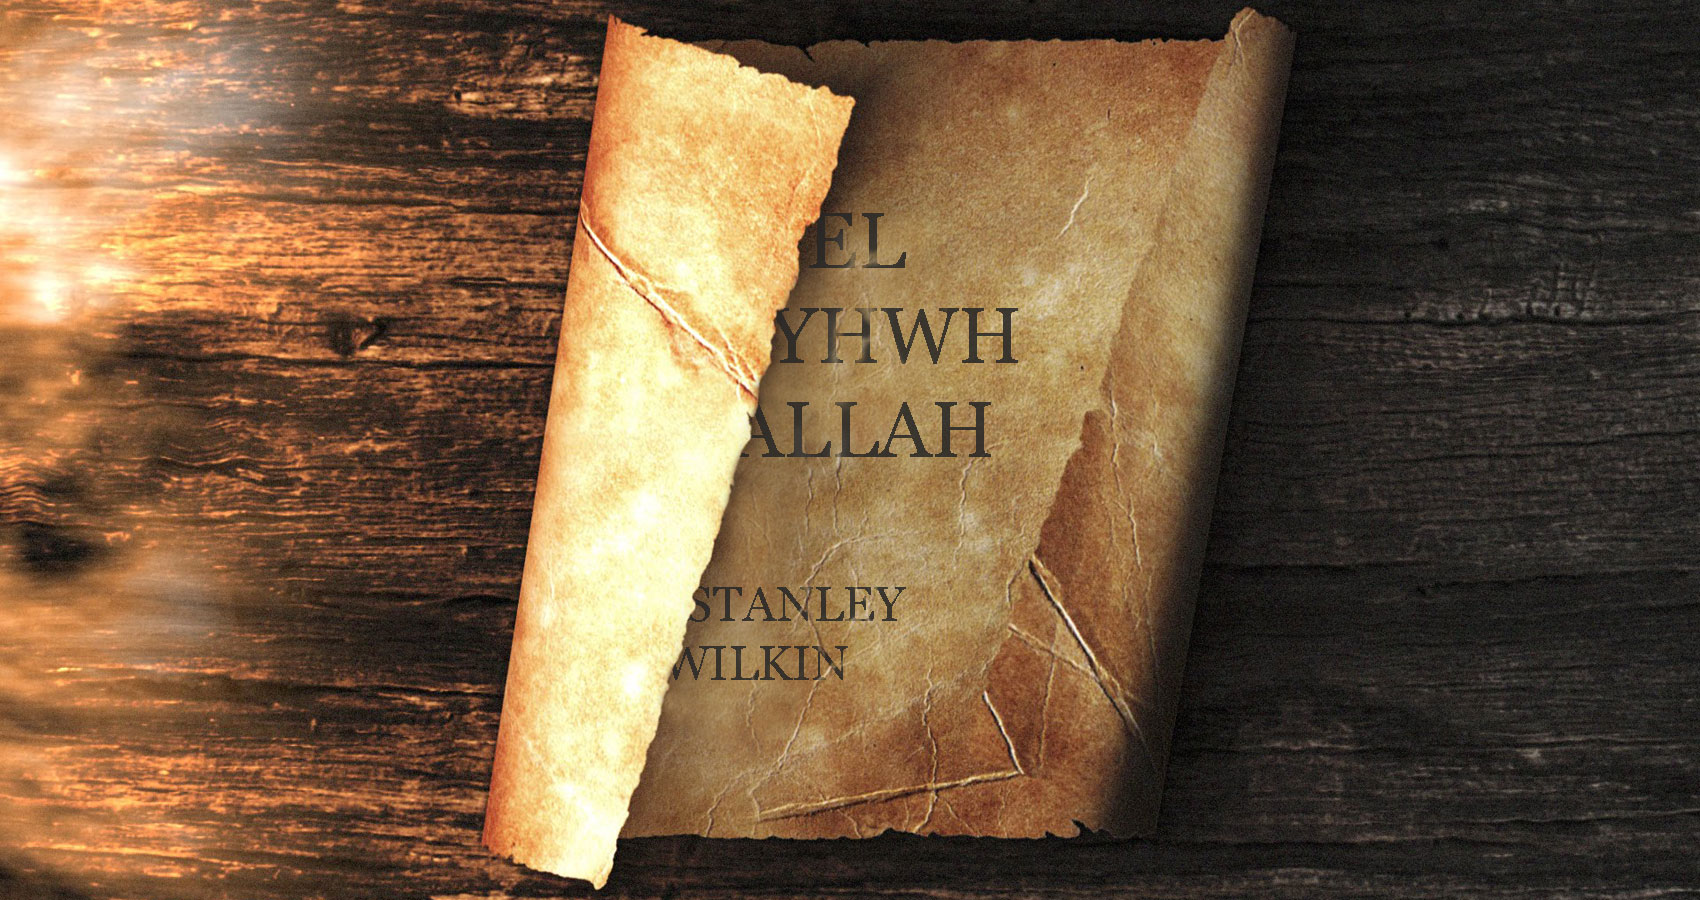 El Yhwh Allah by Stanley Wilkin at Spillwords.com